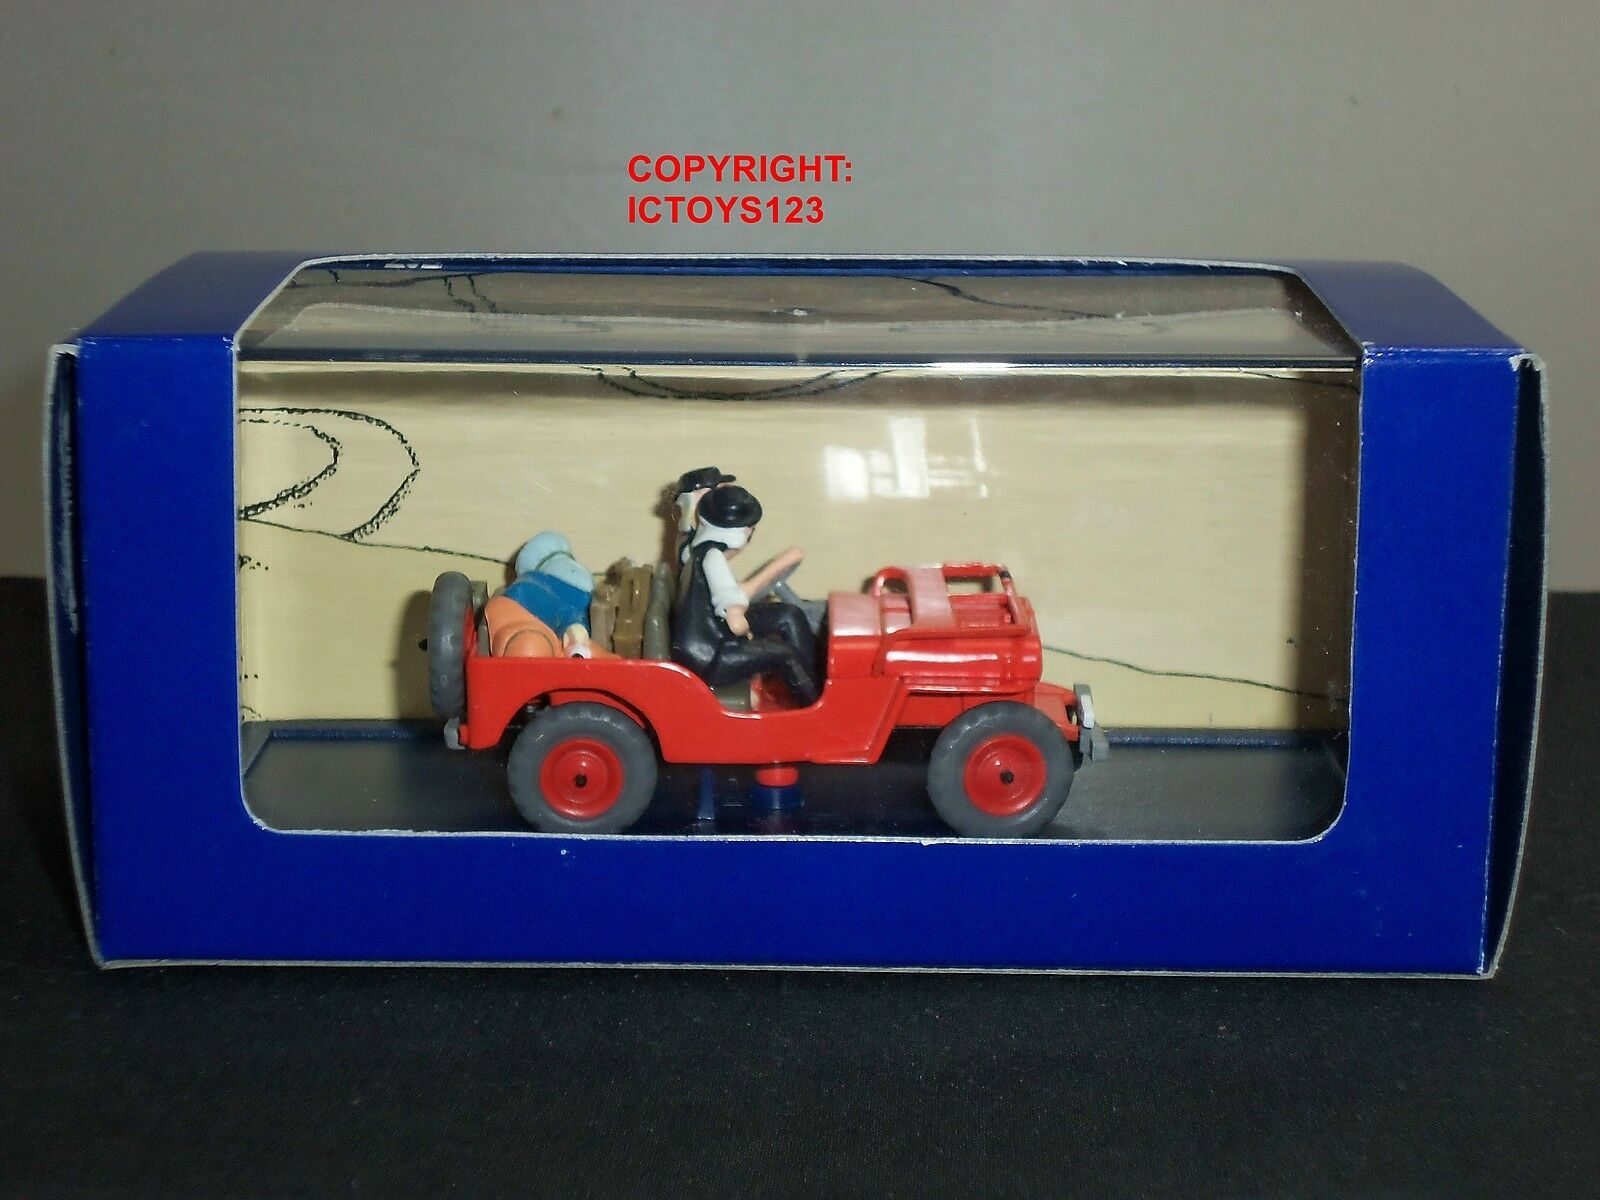 TINTIN NO.7 AU AU AU PAYS DE L'OR black COMIC orange RED WILLYS JEEP DIECAST MODEL CAR 68d35a